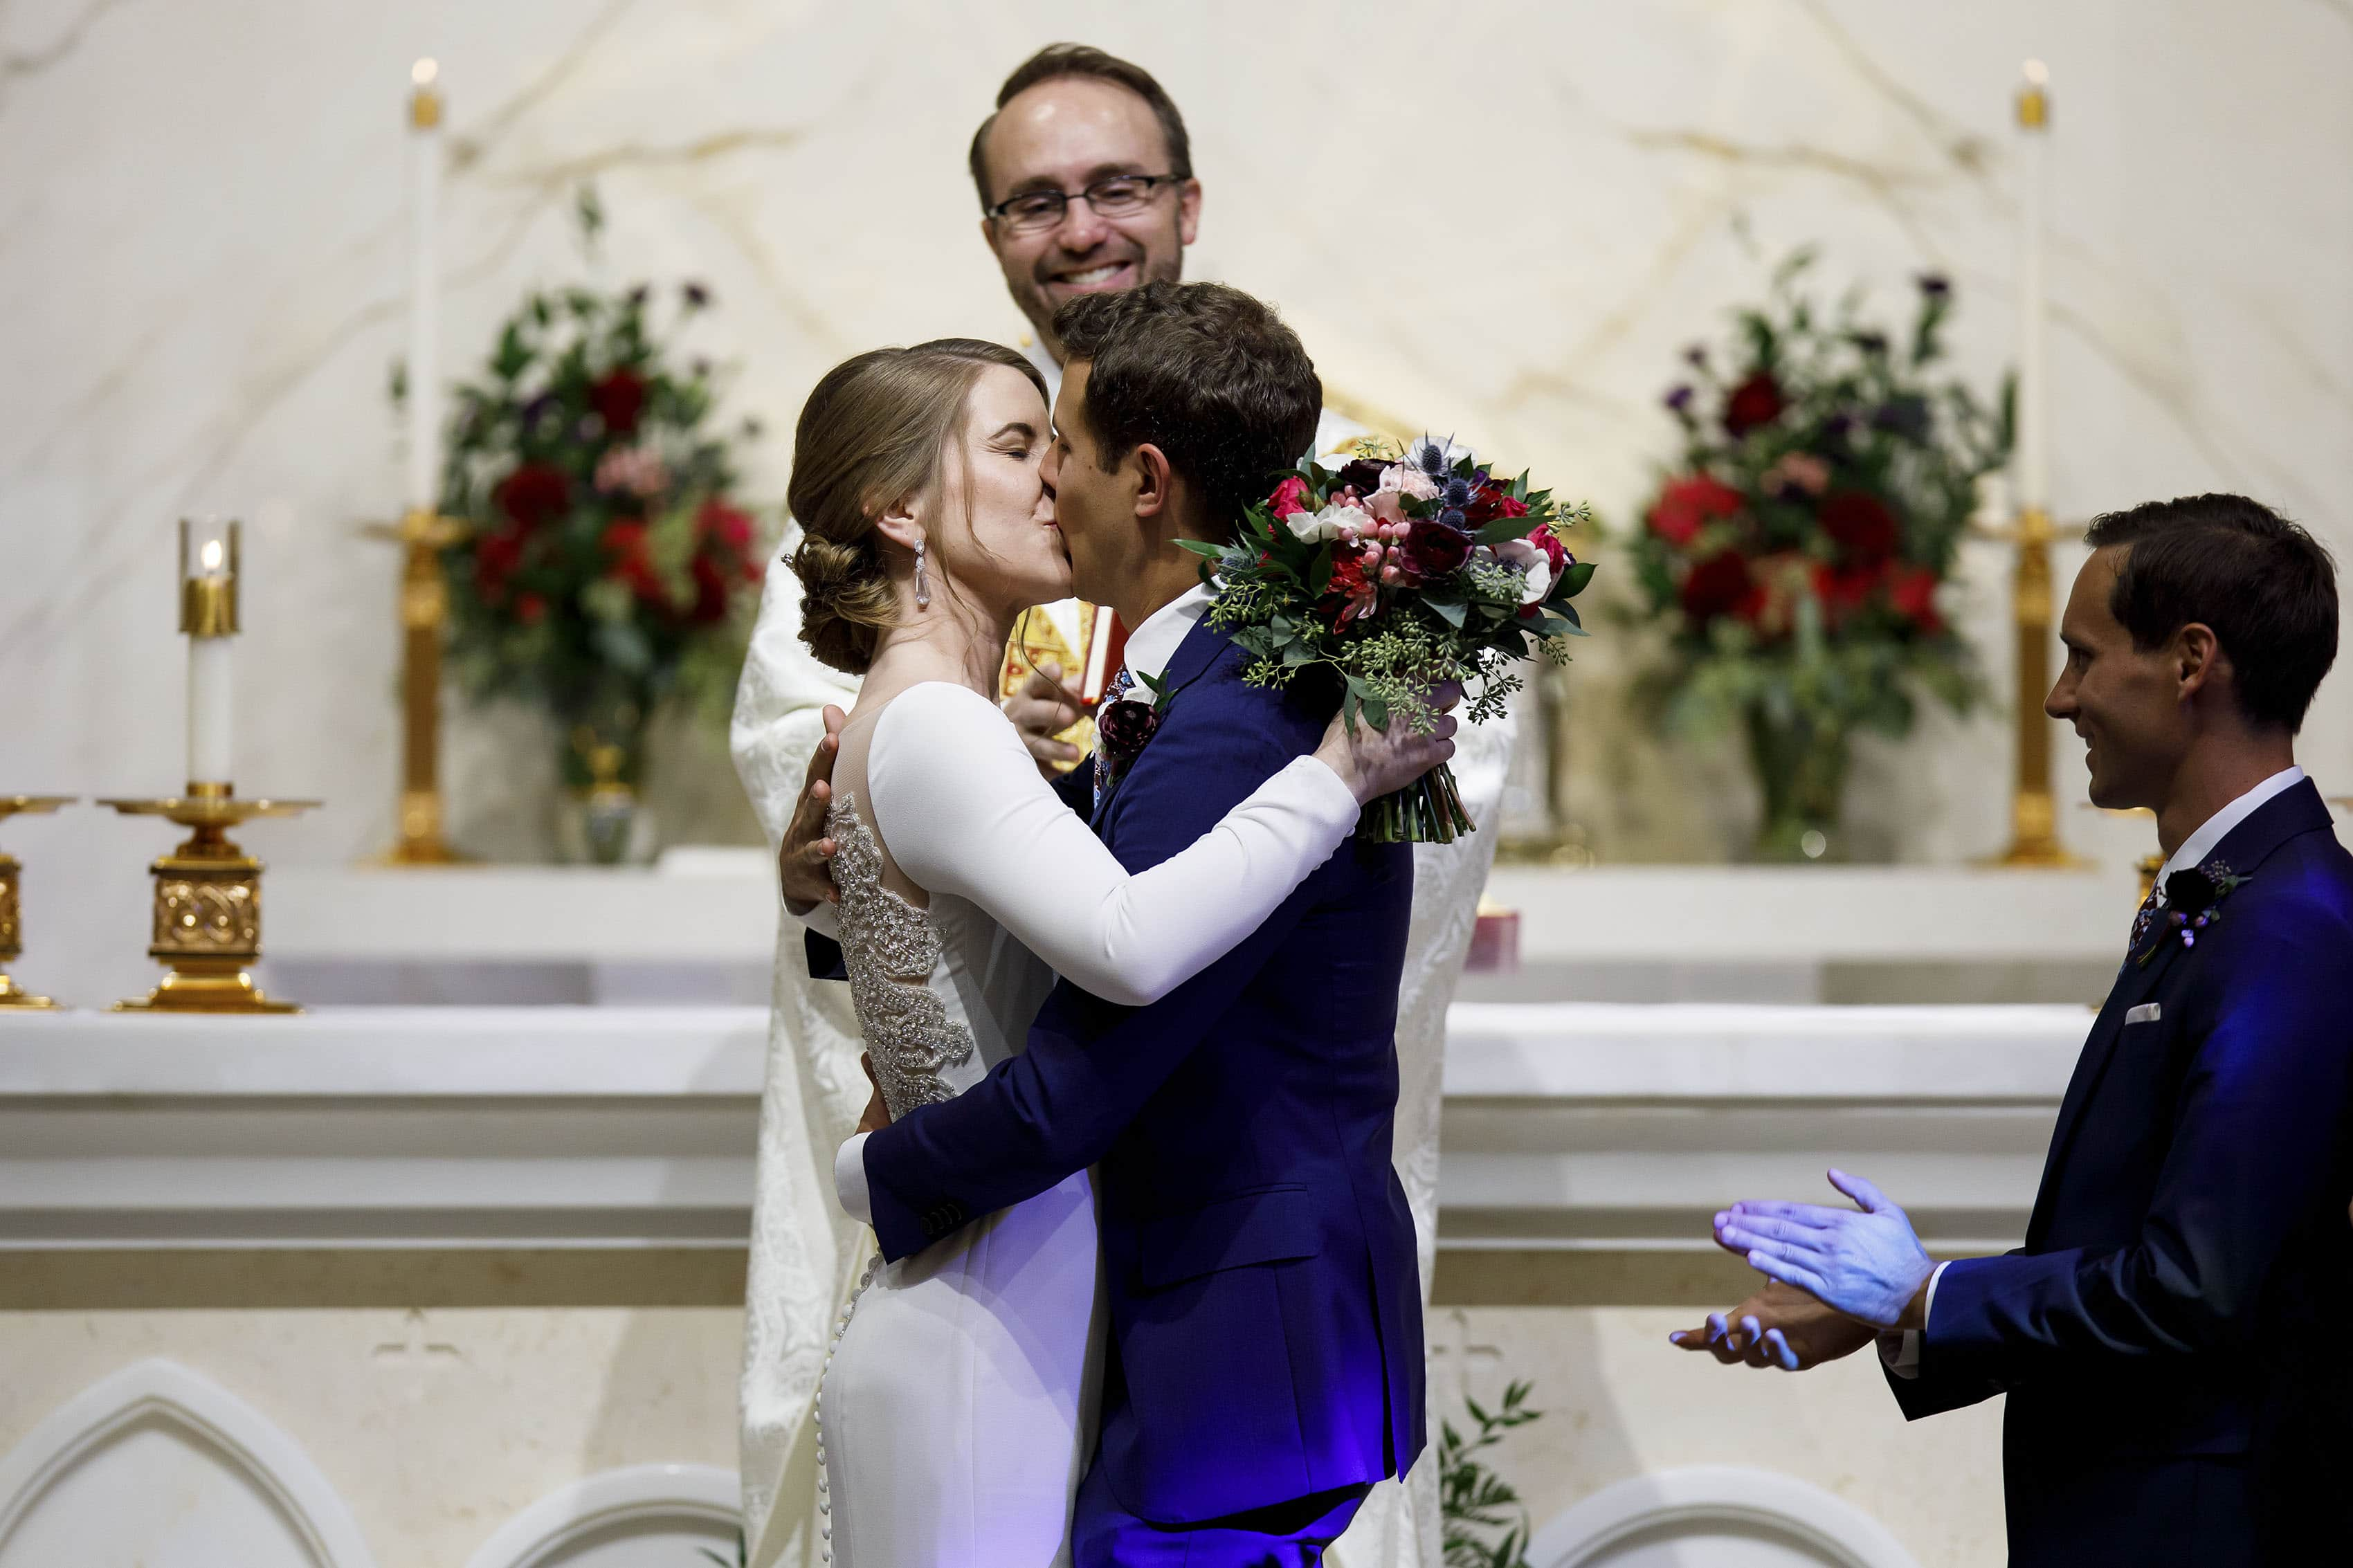 The couple share their first kiss during their wedding ceremony at Our Lady of Lourdes in Denver